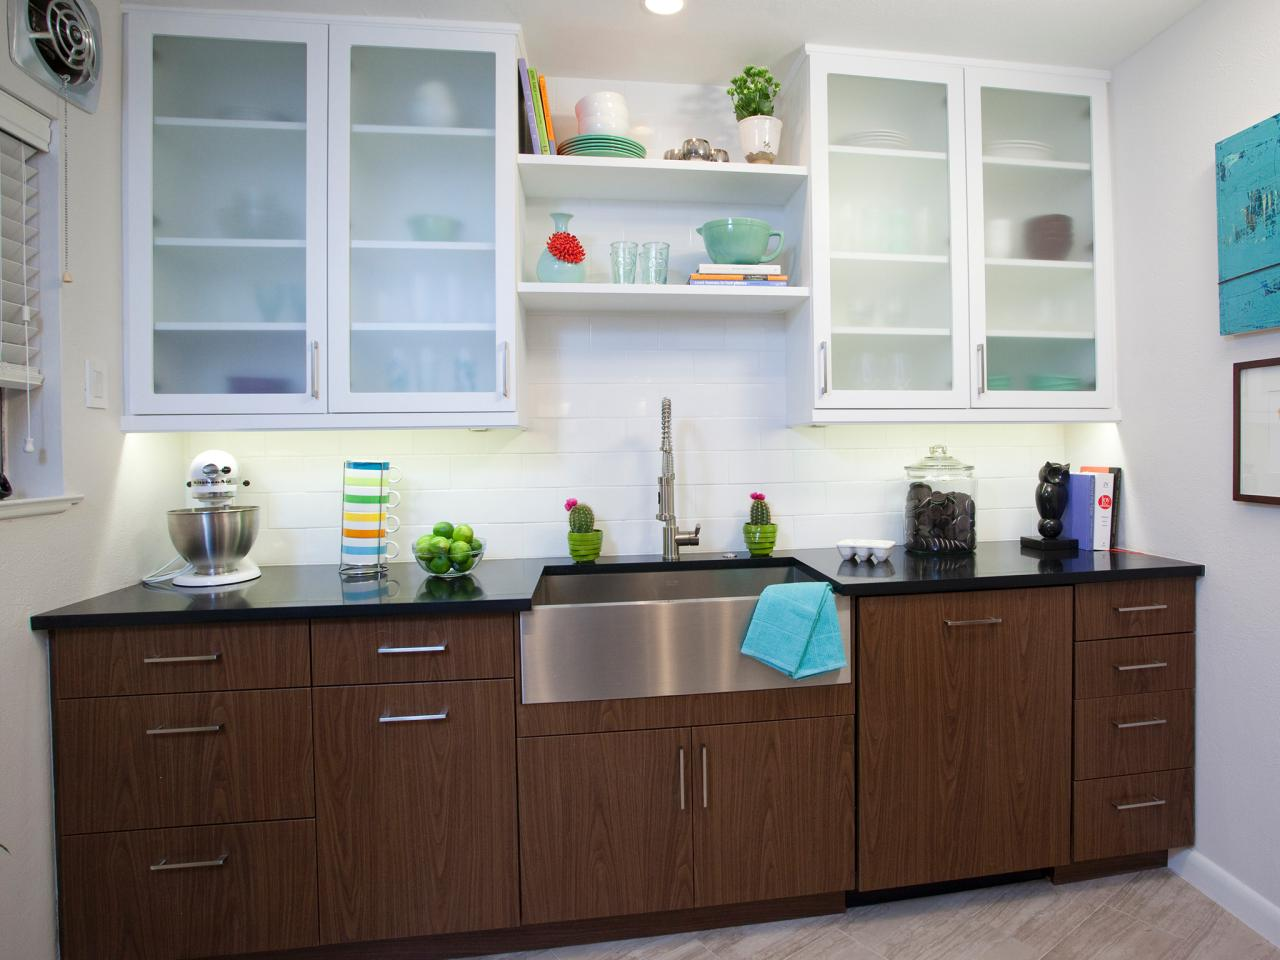 Kitchen cabinet design pictures ideas tips from hgtv hgtv - Kitchen cupboards ideas ...